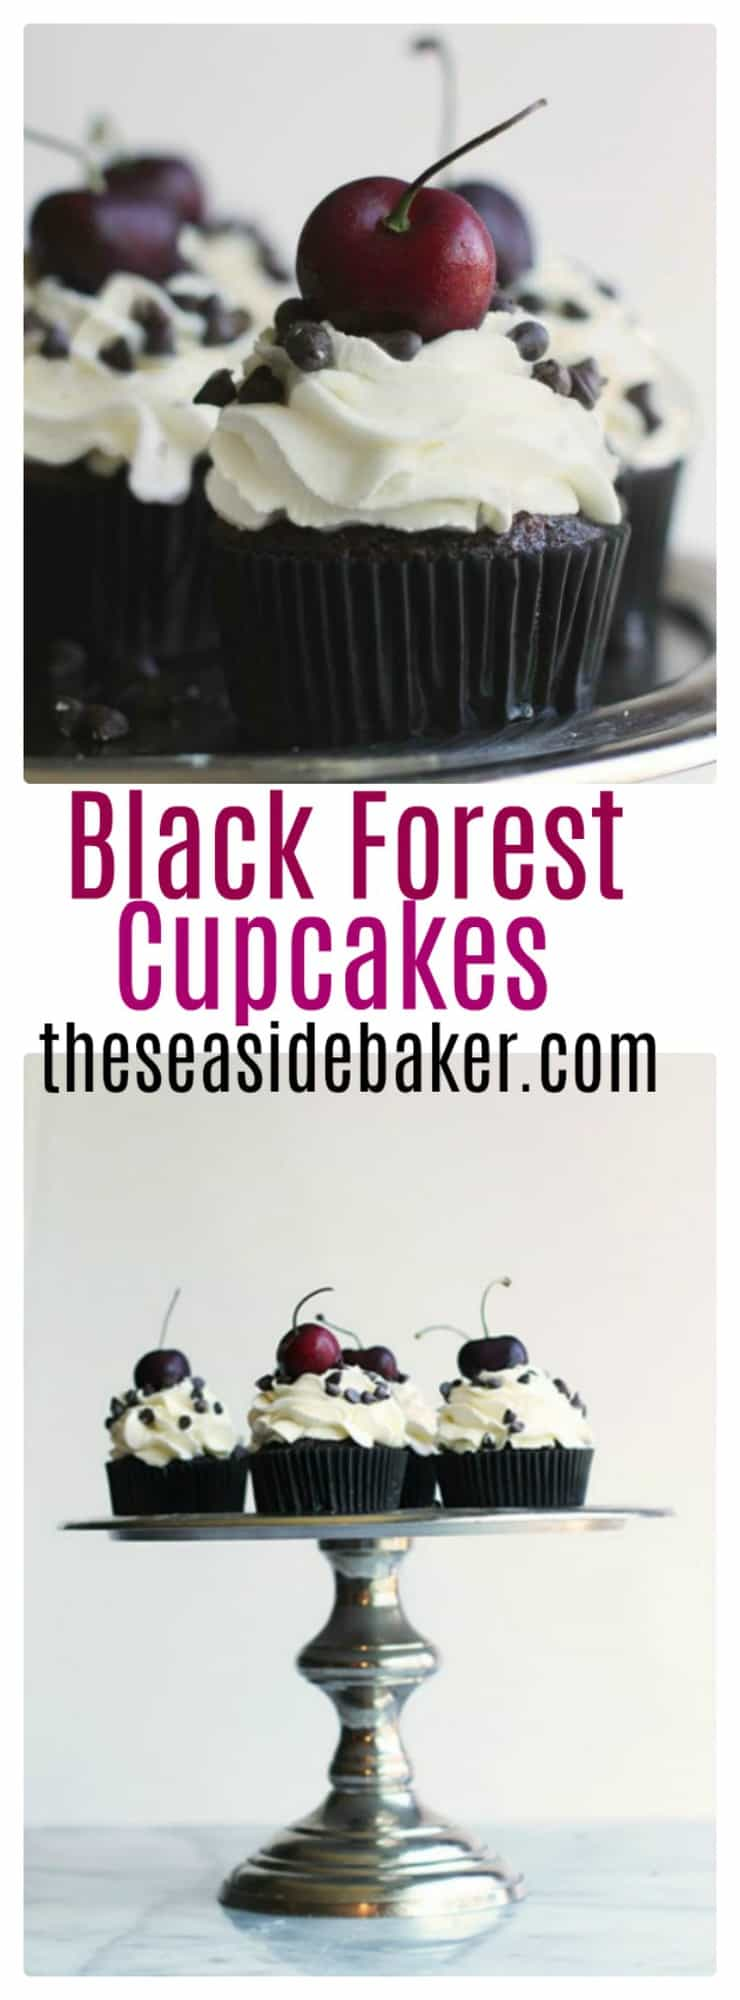 Chocolate cupcakes studded with chopped cherries and topped with fresh whipped cream and more chocolate. #cupcakes #chocolate #chocolatecupcakes #blackforest #germancake #cupcakerecipe